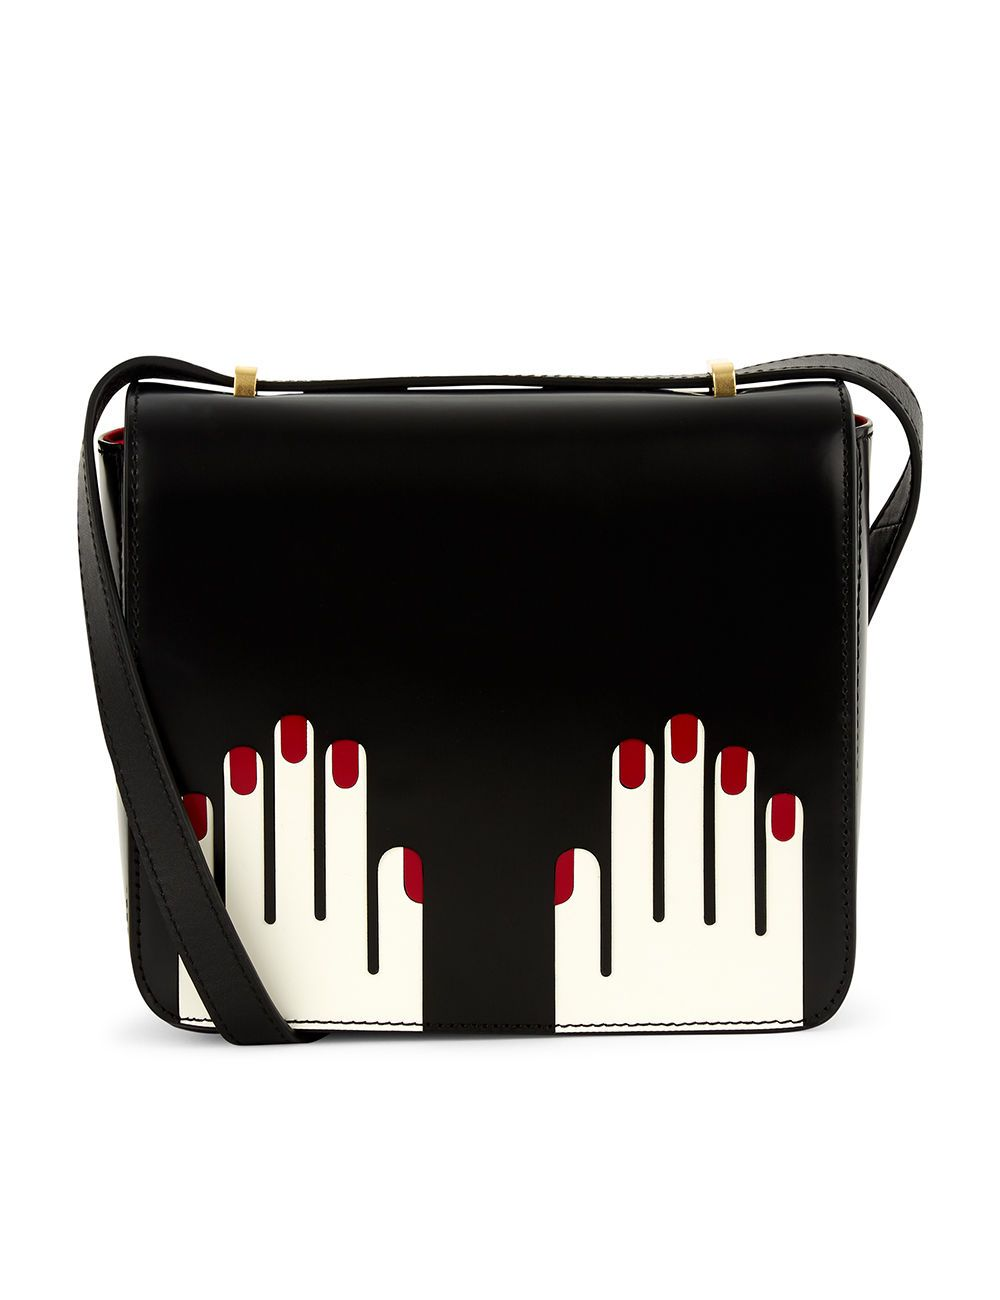 4dc24397a074 LULU GUINNESS White Leather Marcie Hands Bag. #luluguinness #bags #leather  #lining #denim #shoulder bags #silk #cotton #